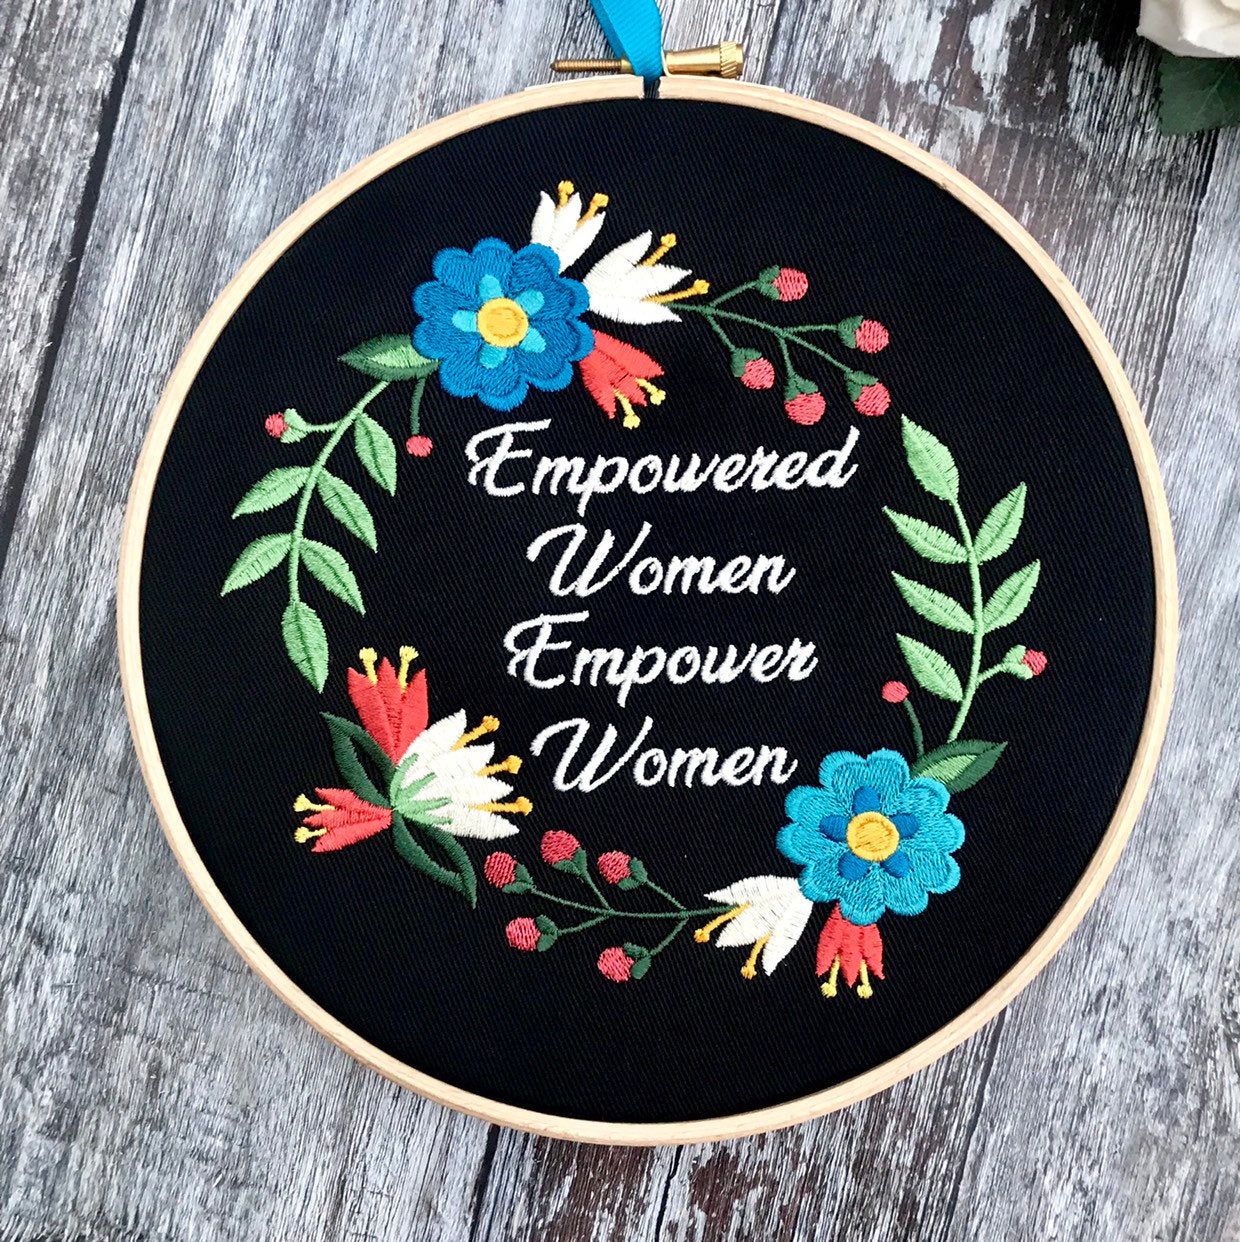 Empowered women empower women, Embroidery hoop art